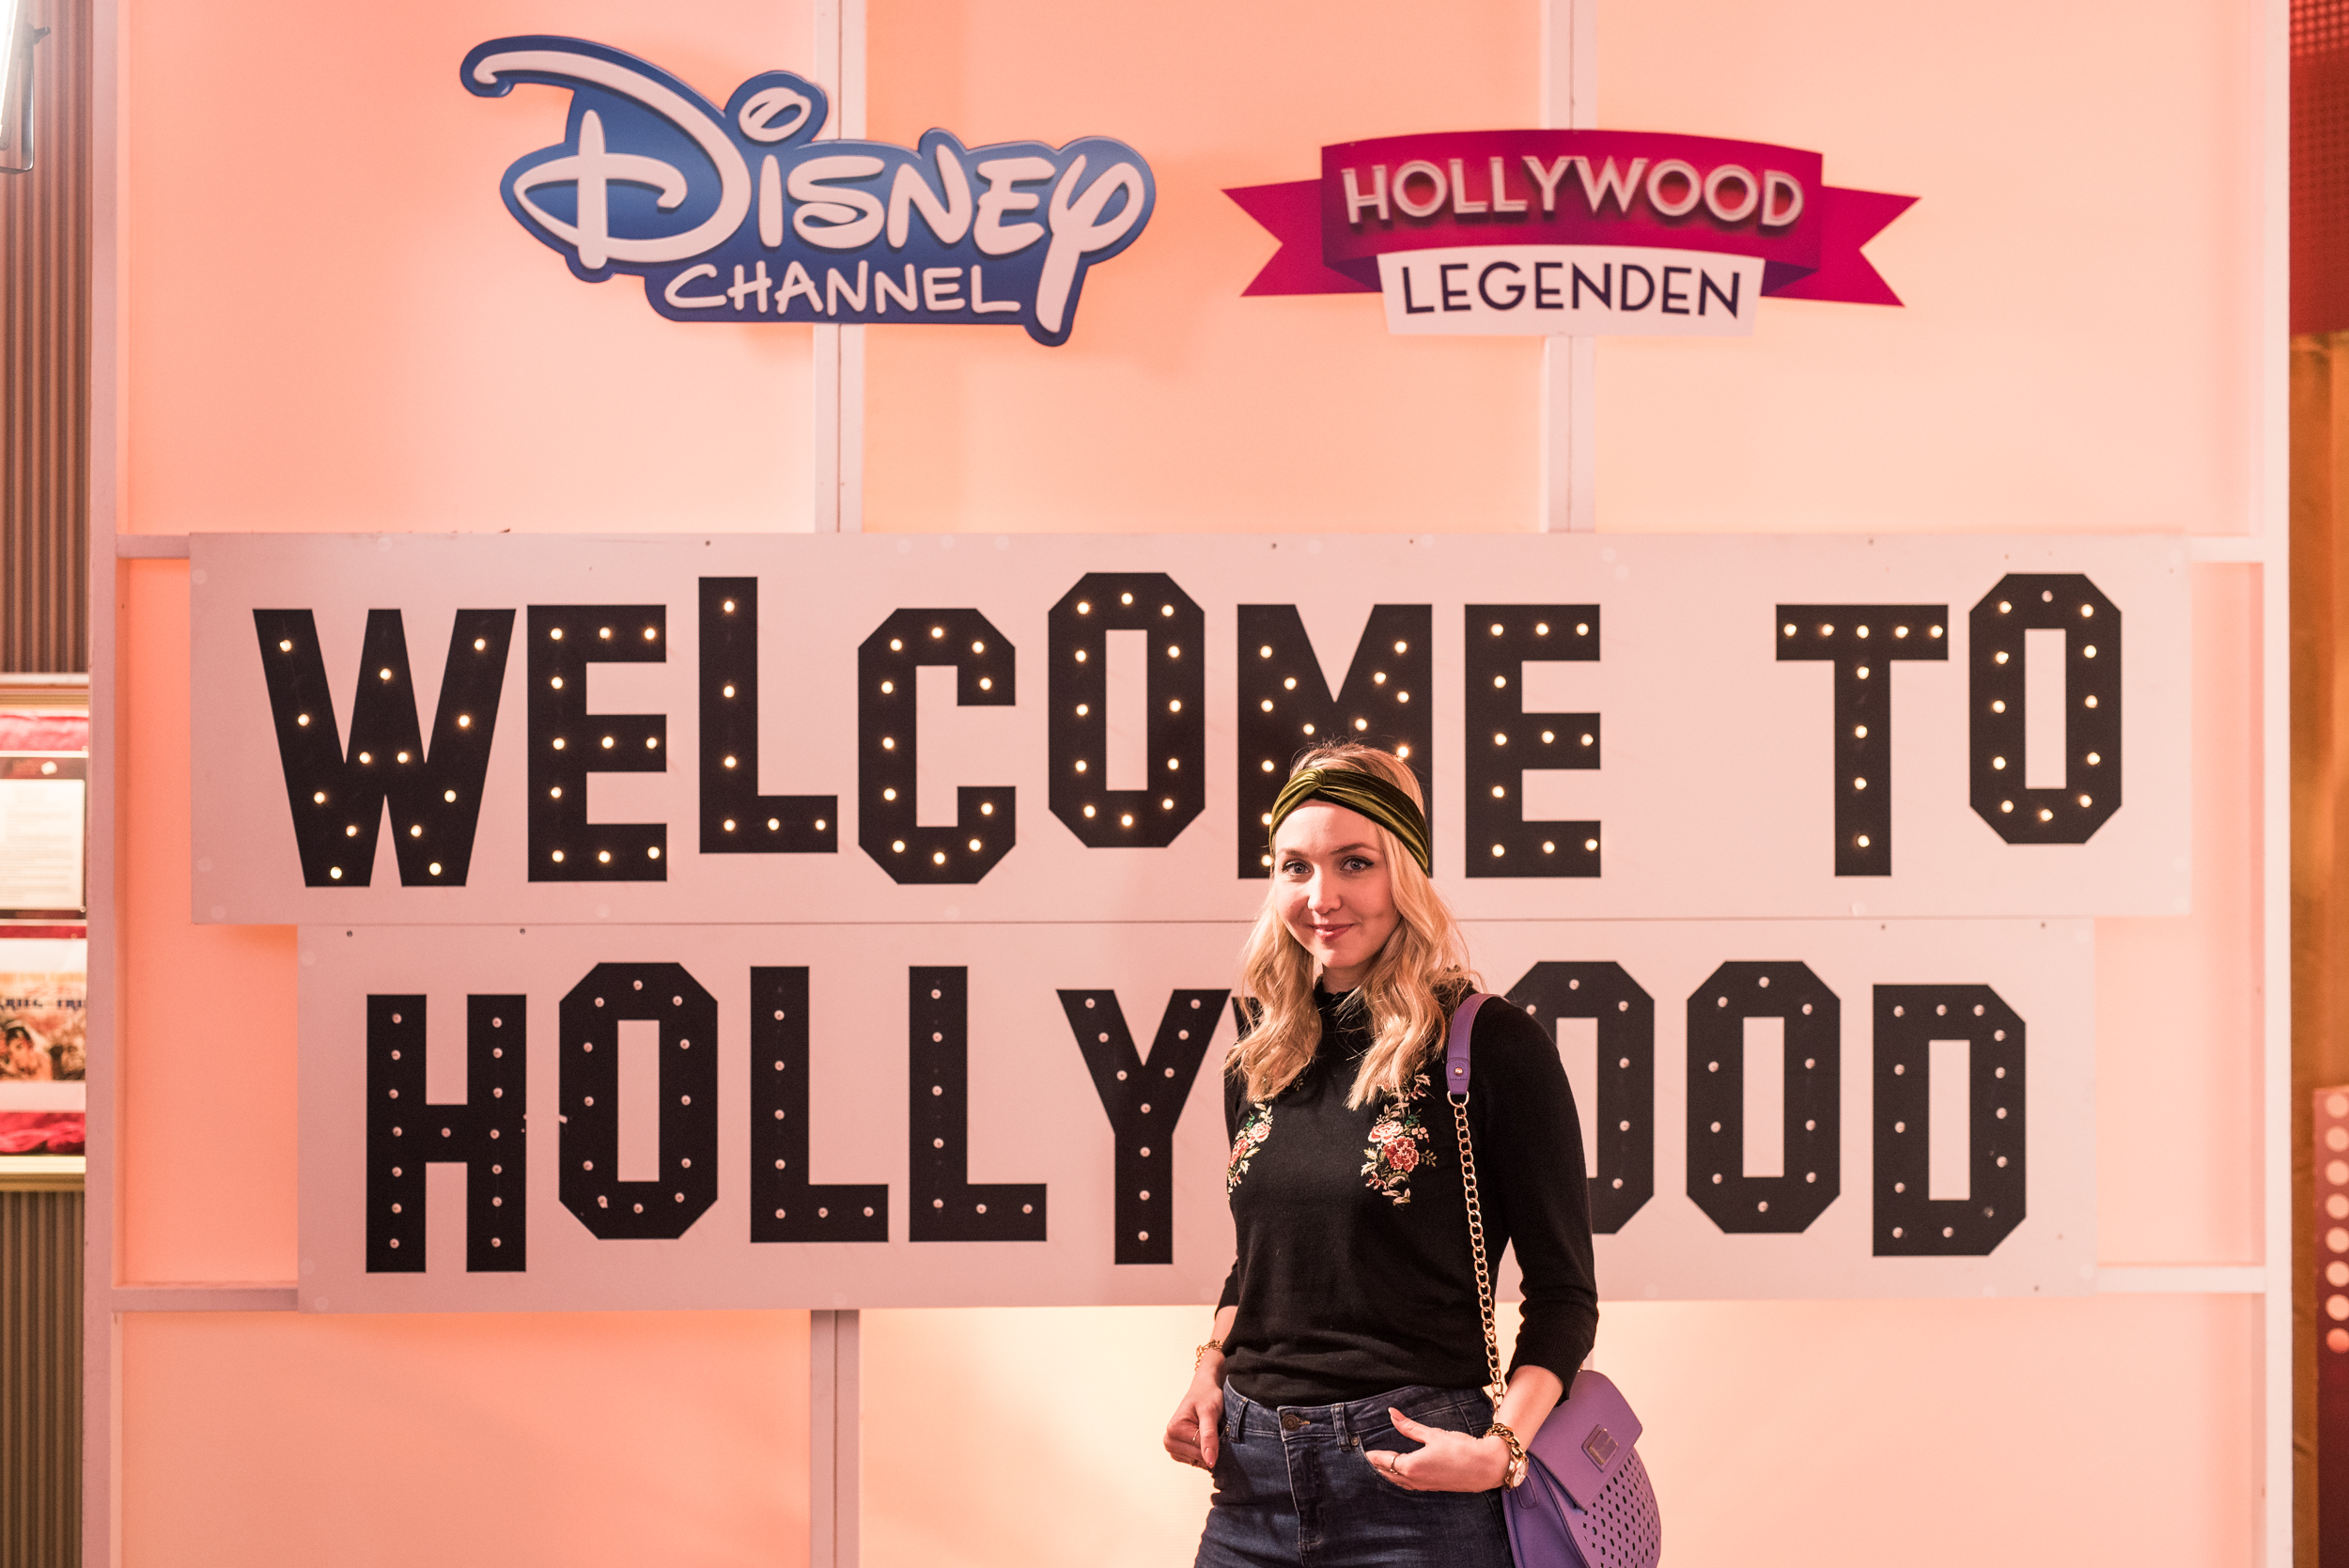 DISNEY CHANNEL proudly presents: Hollywood Legenden oder mein Ootd ...